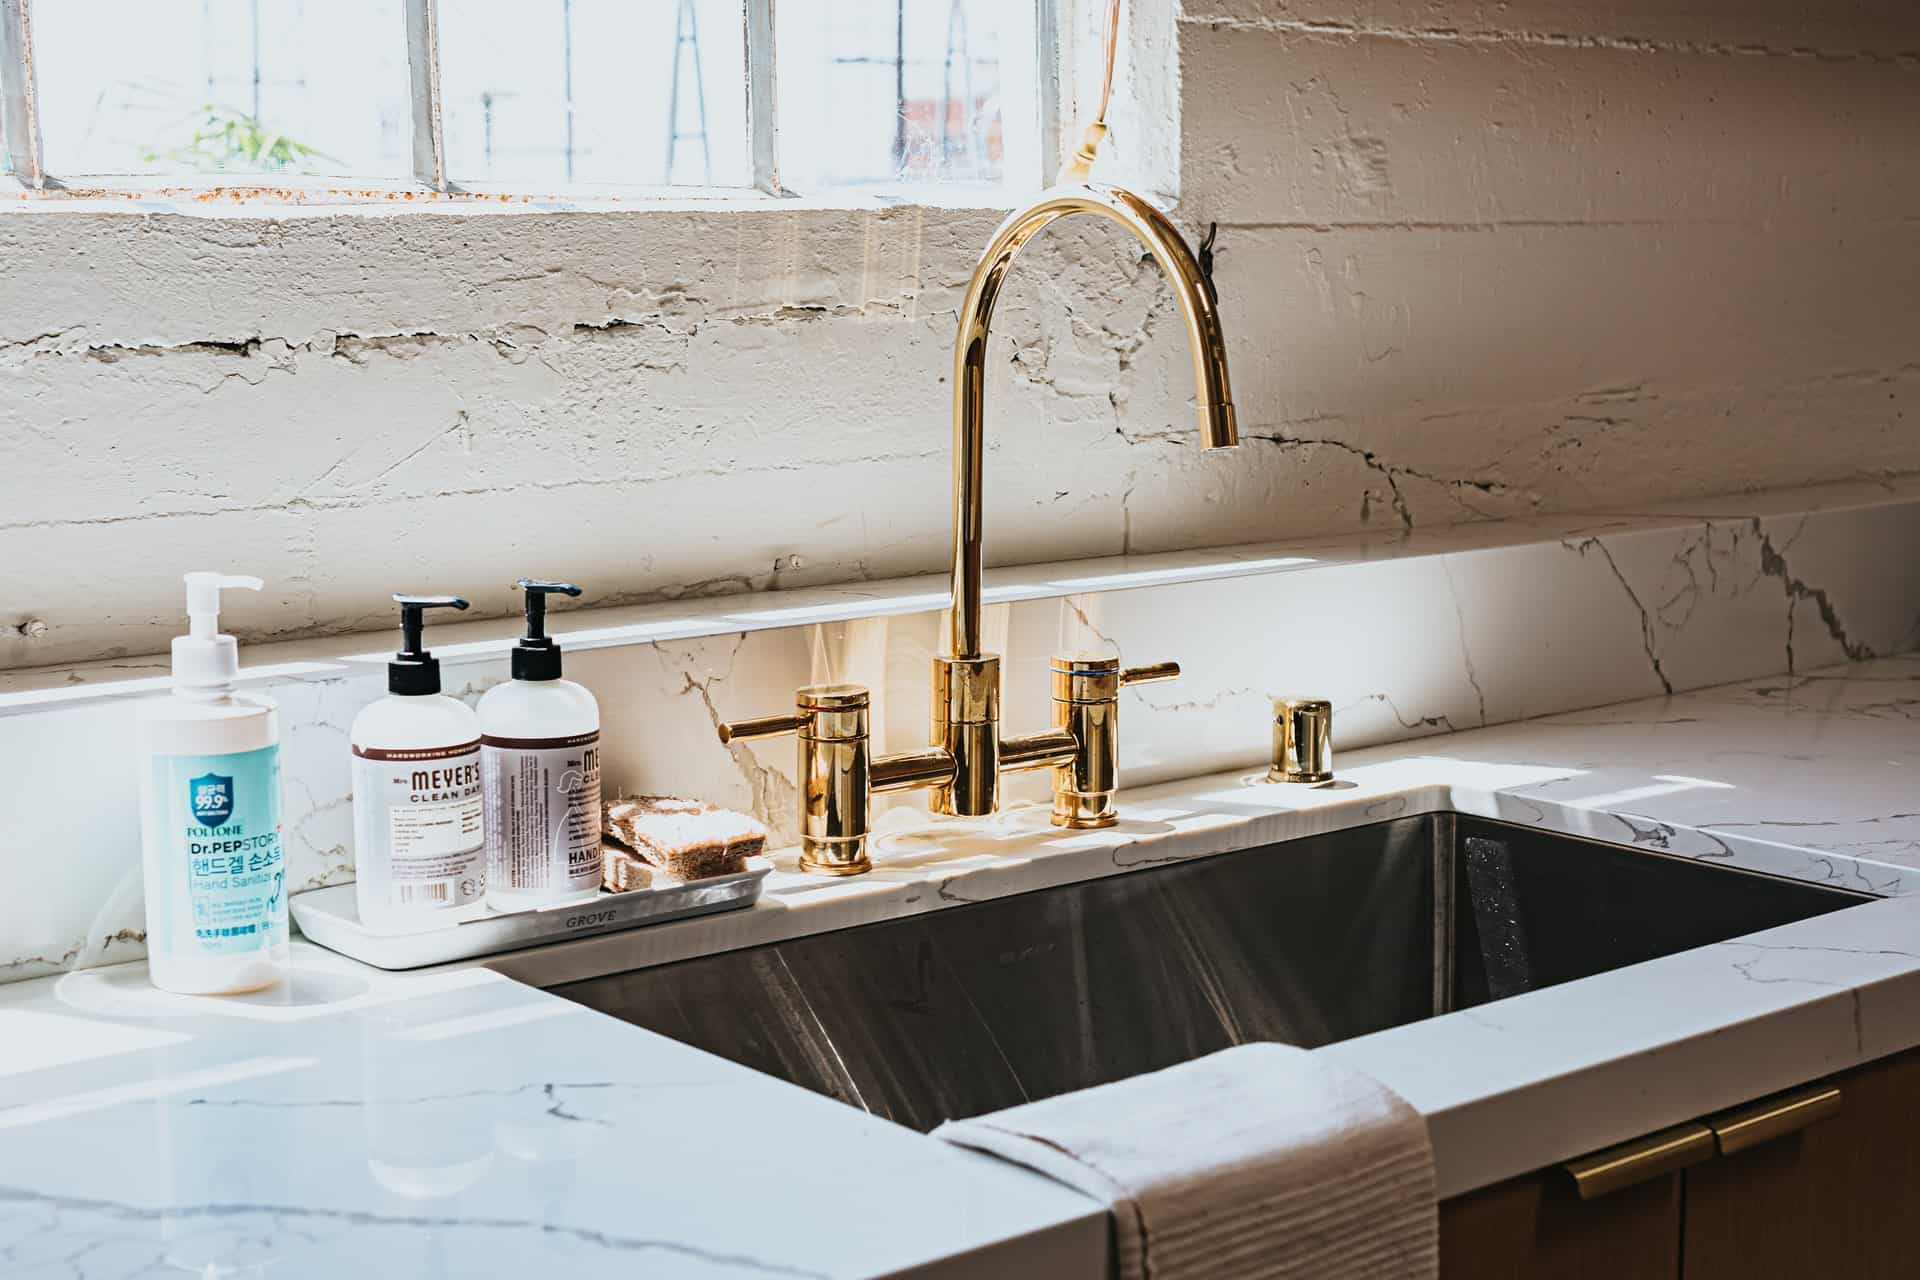 Stainless steel sink and faucet in a farmhouse kitchen